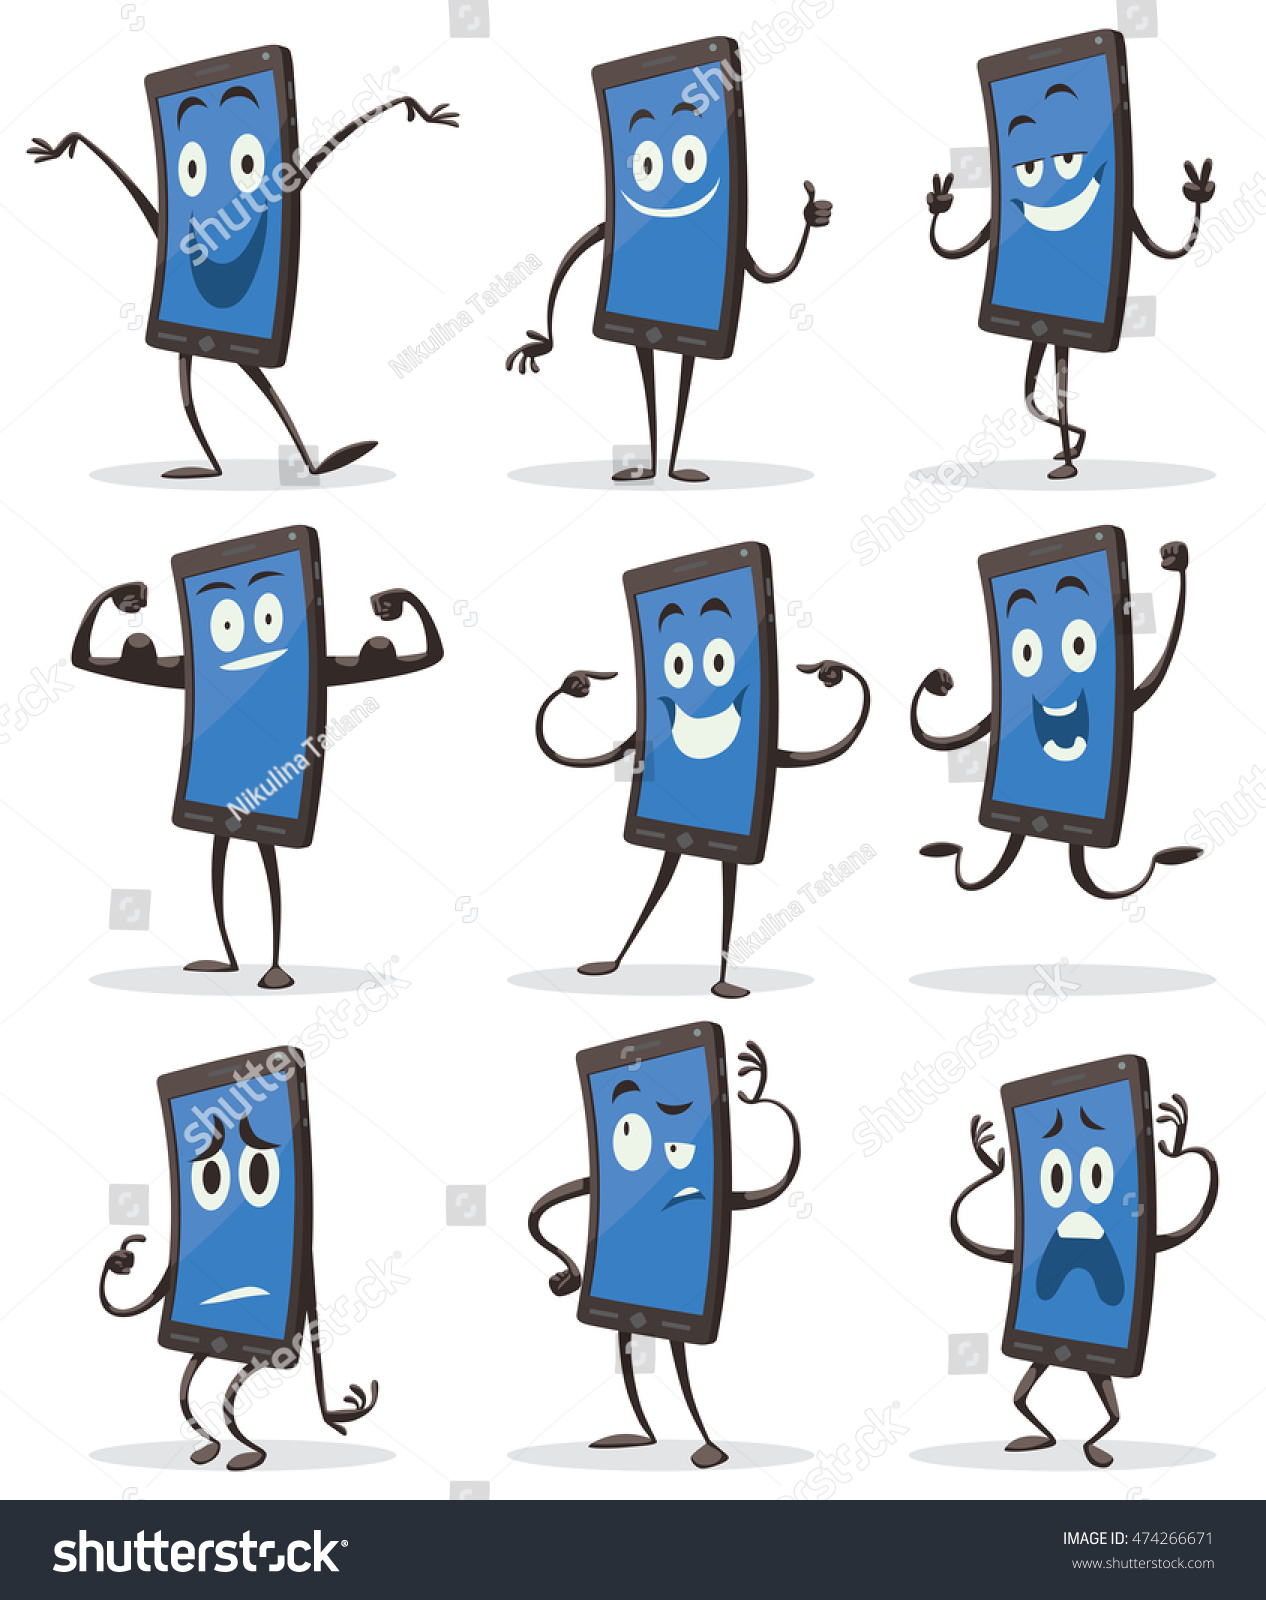 Vector set of cartoon images of black smartphones with blue screens with arms and legs with a variety of emotions and actions on a white background. Positive character. Vector illustration. #474266671